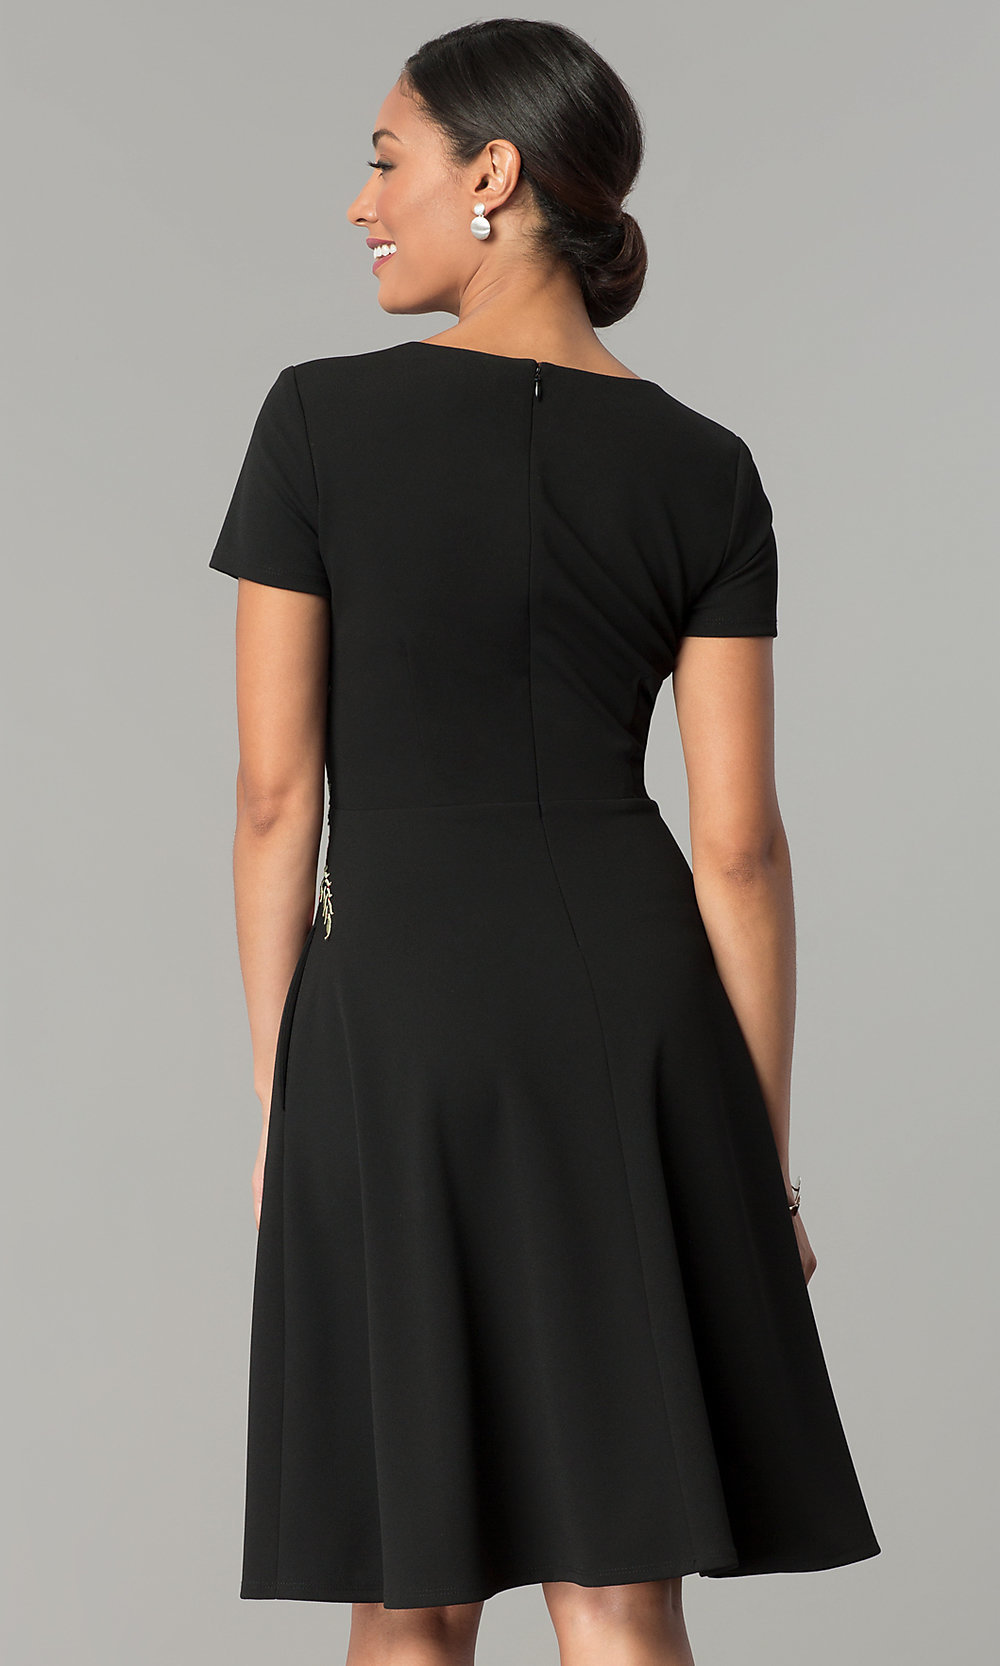 Casual Black Knee-Length Party Dress-PromGirl